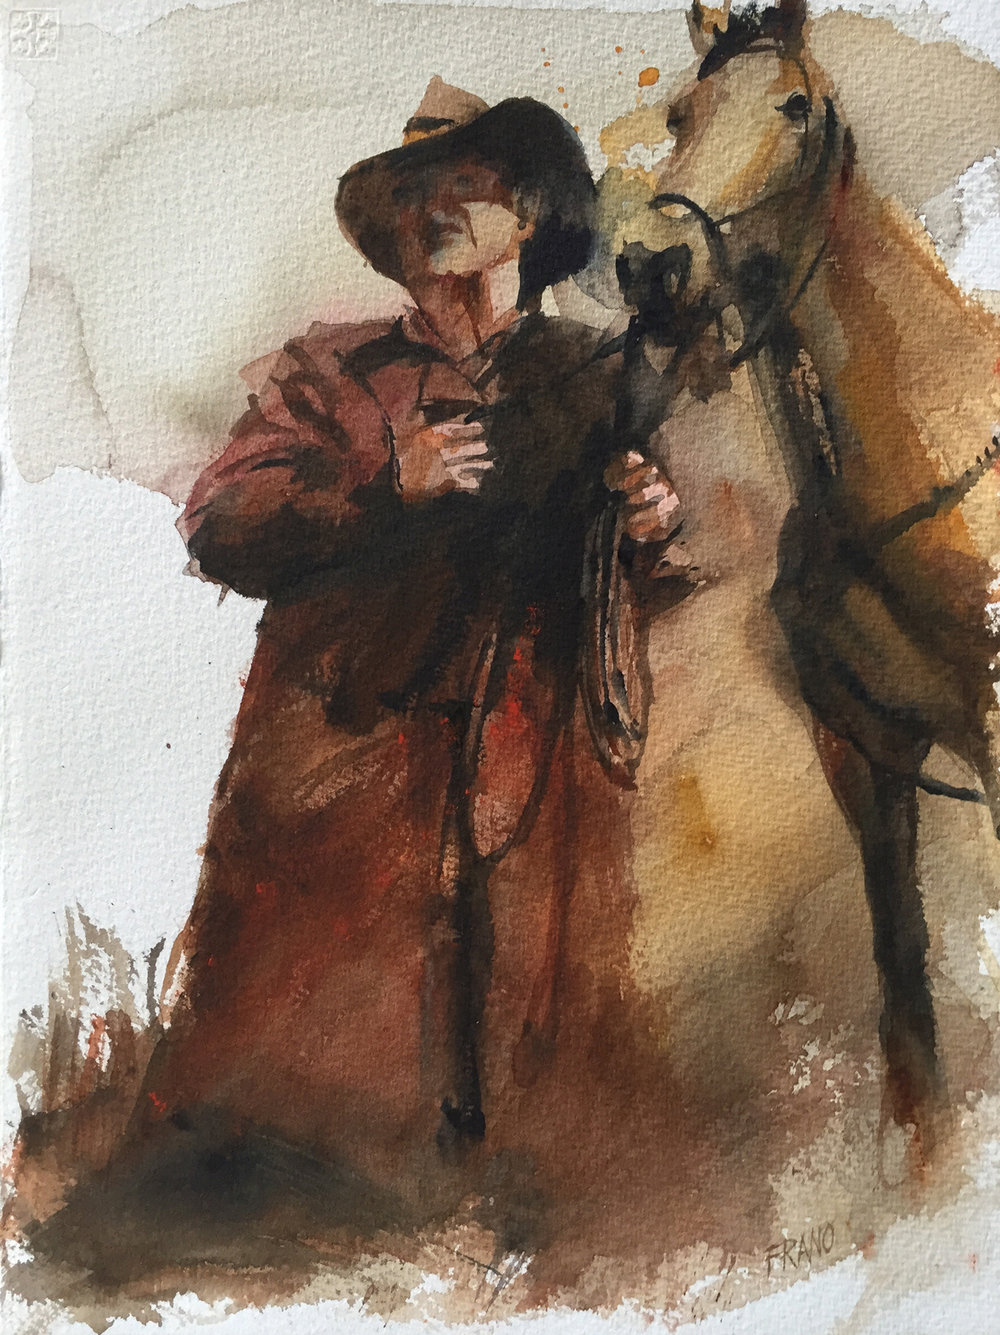 Digger-Horse-Water-Colour-Painting-by-Frano.jpg